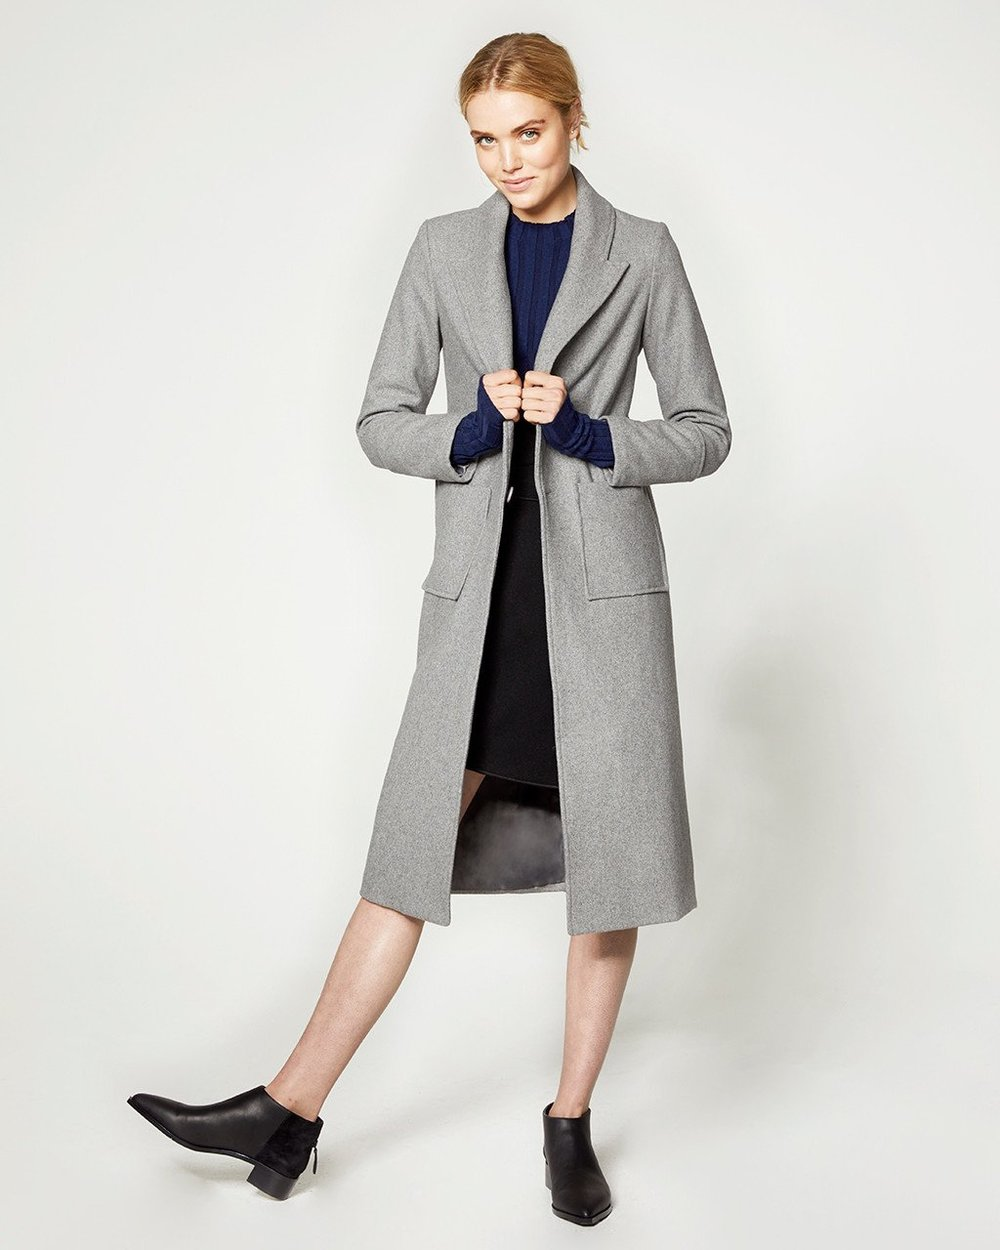 3. structured outerwear - That actually keeps the elements out.